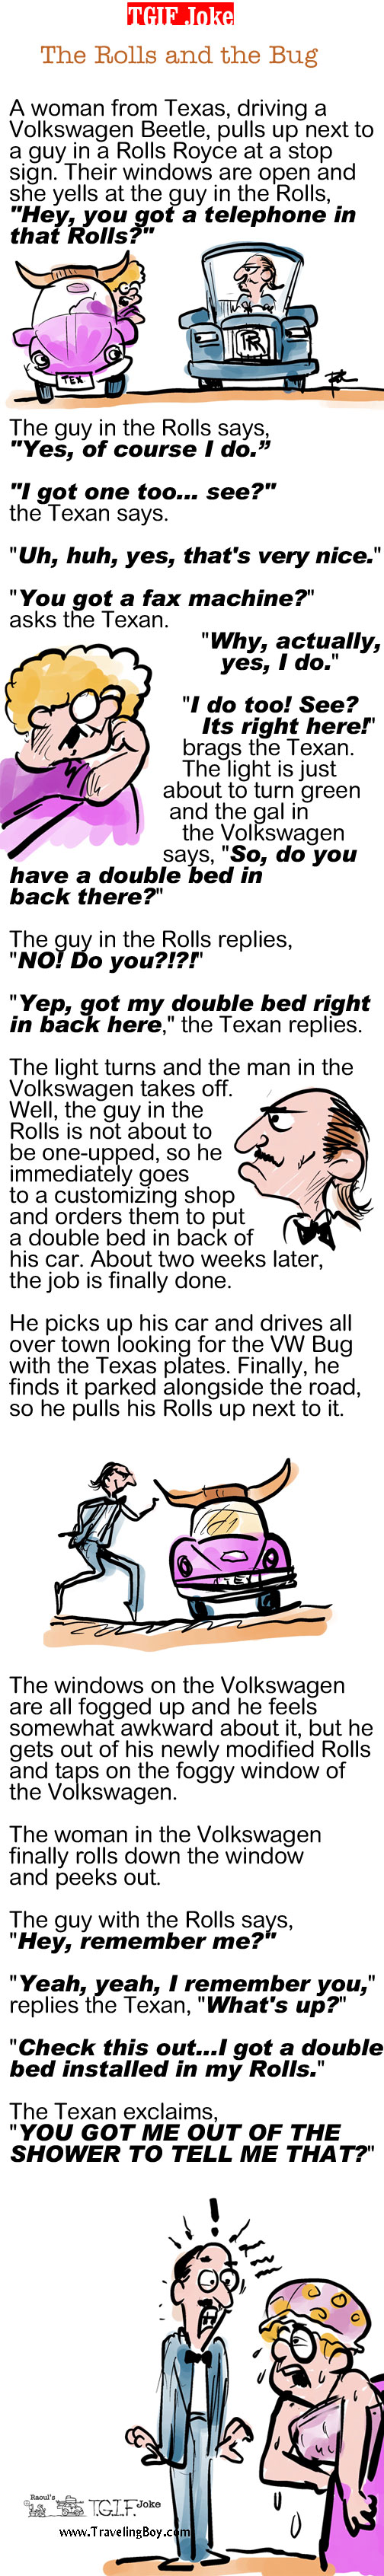 TGIF Joke of the Week: The Rolls and the Bug